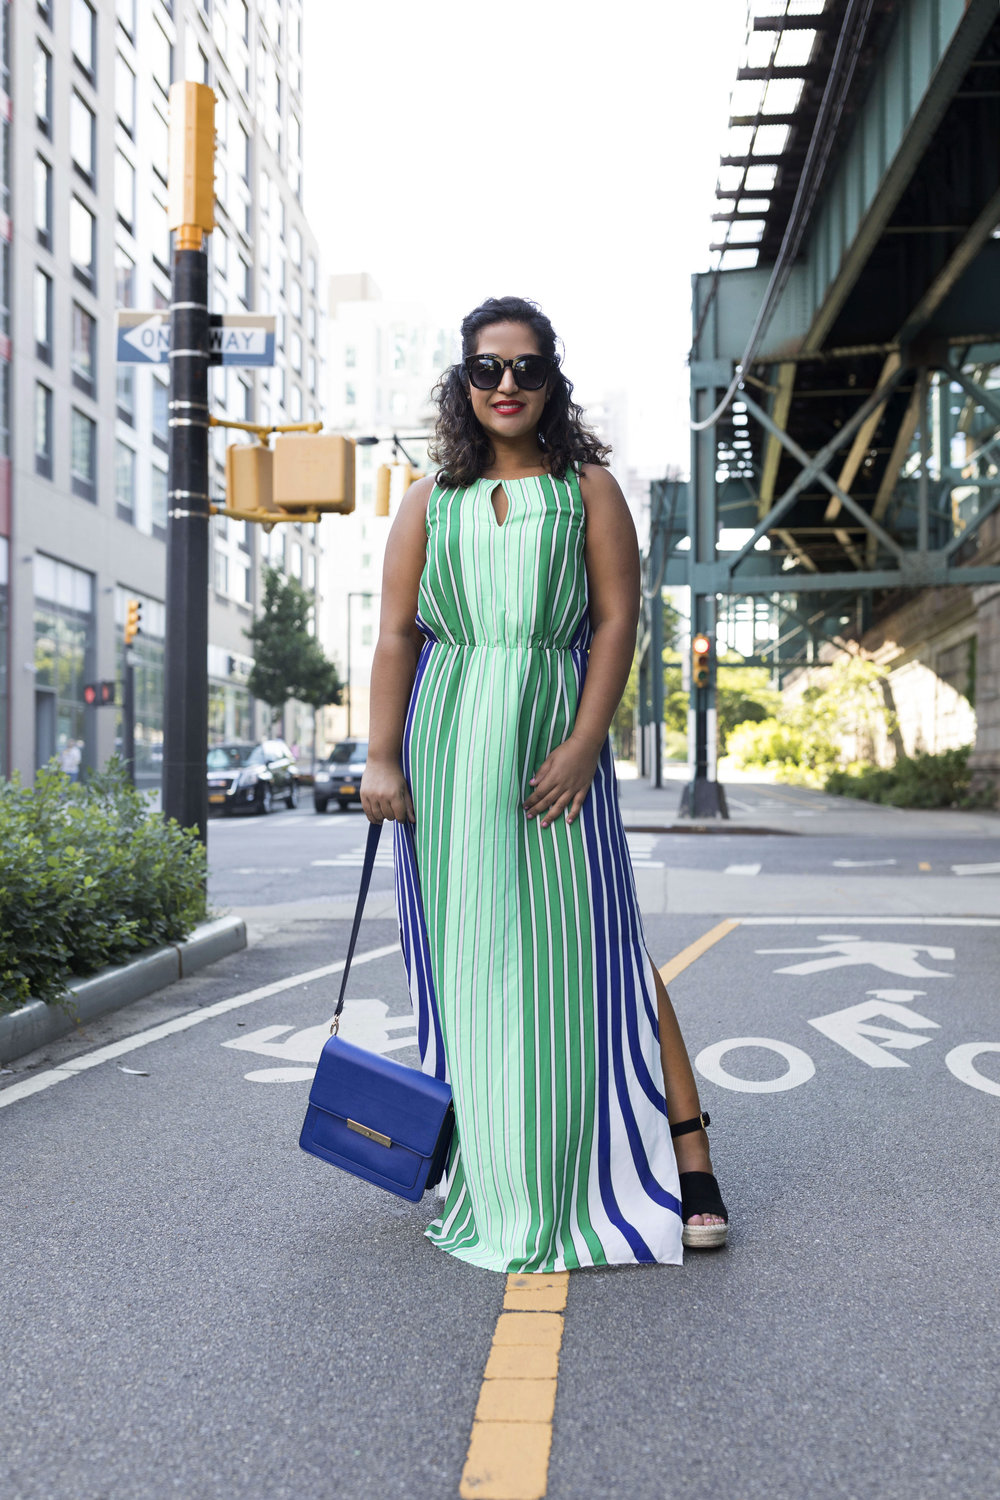 Krity S x Adrianna Papell x Stripped Maxi7.jpg